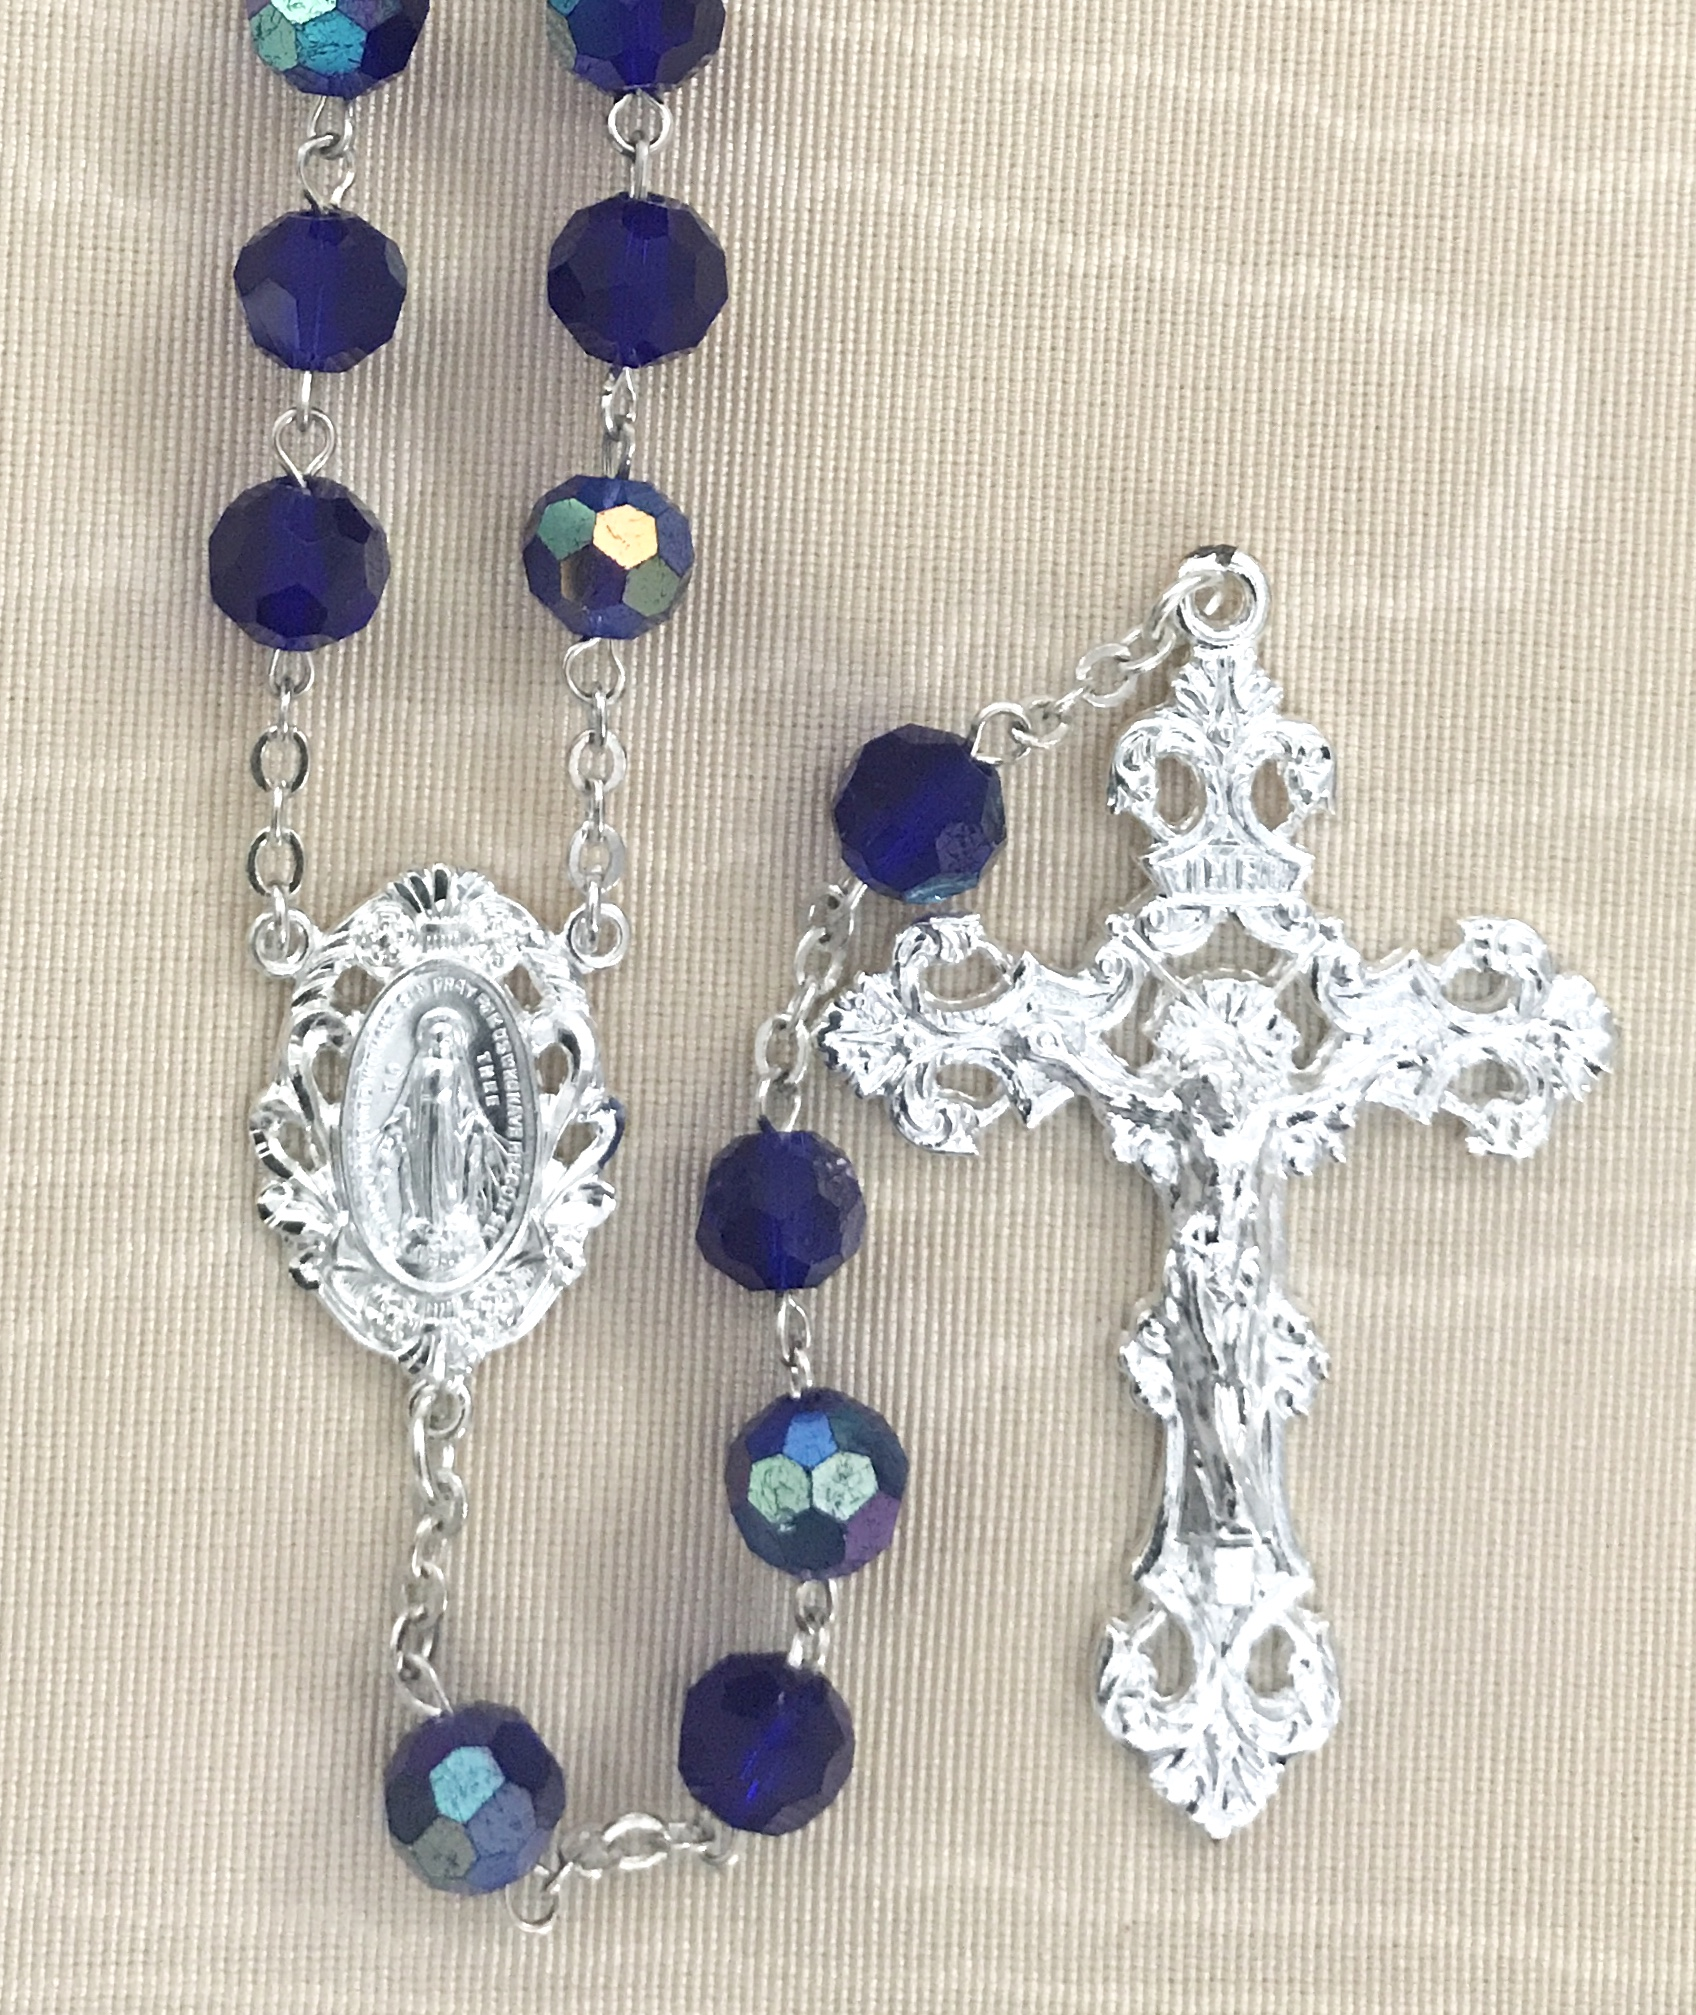 8mm DARK SAPPHIRE TIN CUT ROSARY WITH STERLING SILVER PLATED CRUCIFIX AND CENTER GIFT BOXED